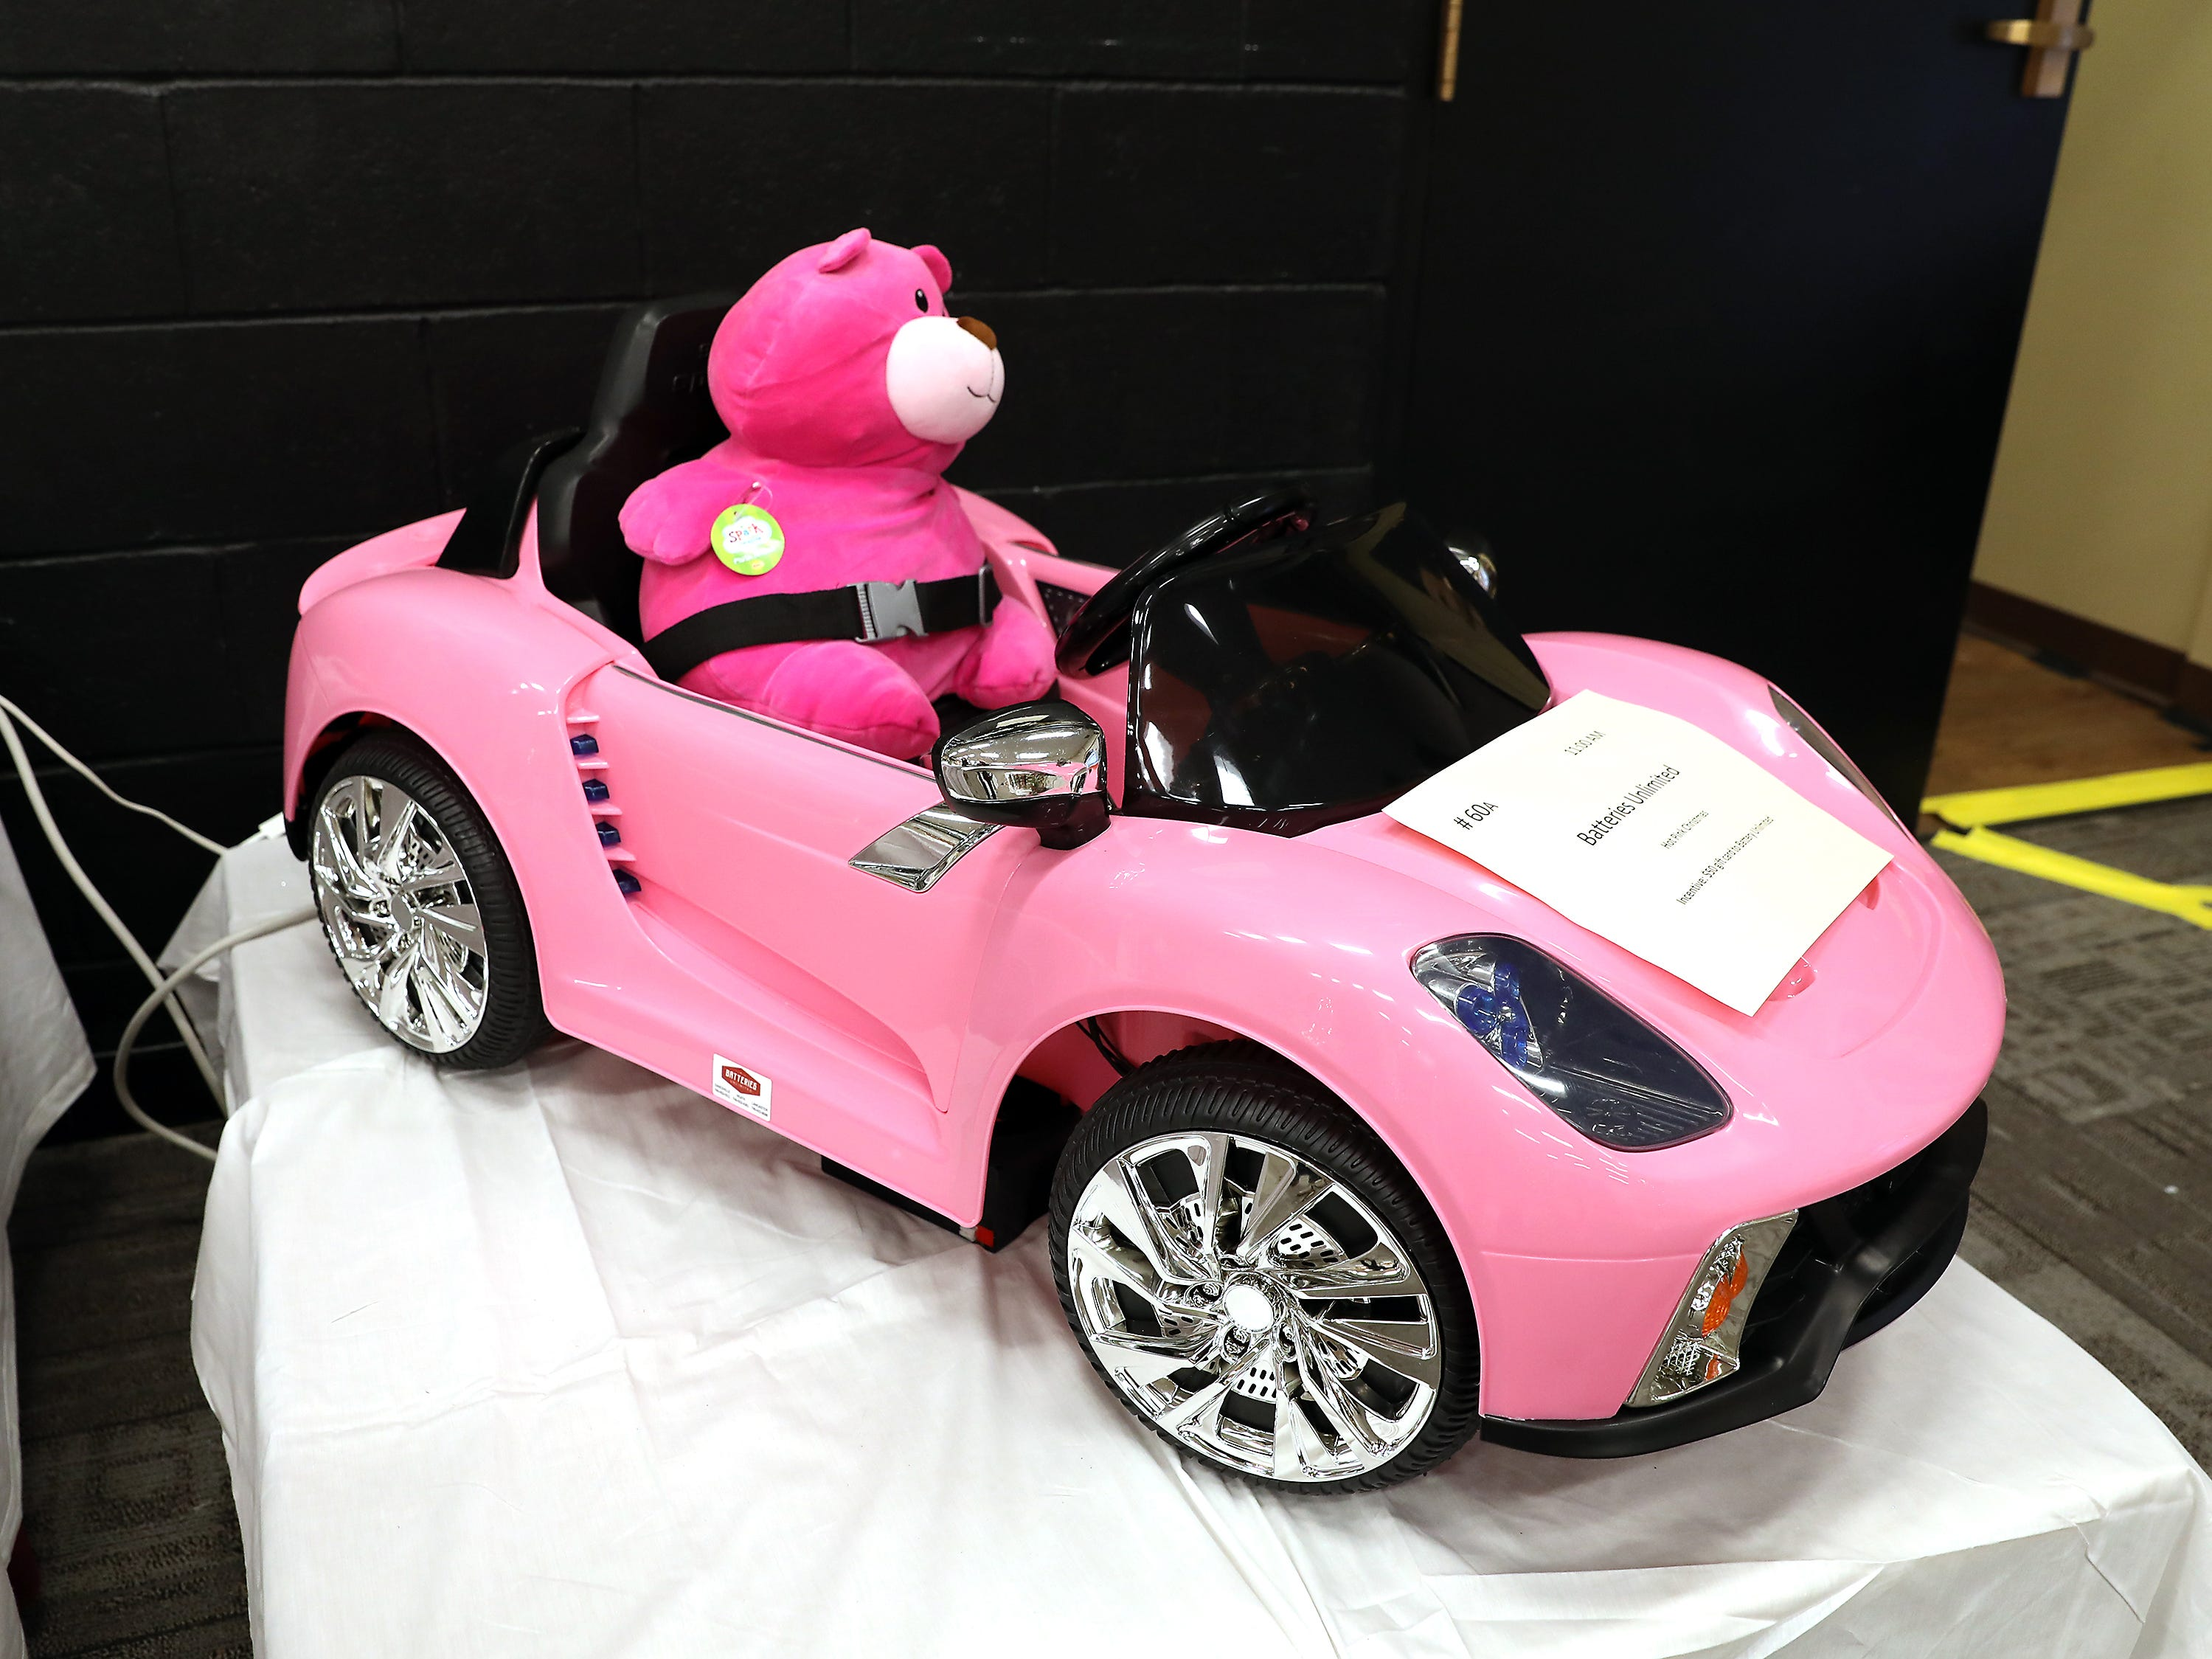 60A	11:00 AM	Batteries Unlimited	Other	Hot Pink Christmas	A hot pink powerwheel car with a large pink teddy bear. 		$50 gift card to Batteries Unlimited